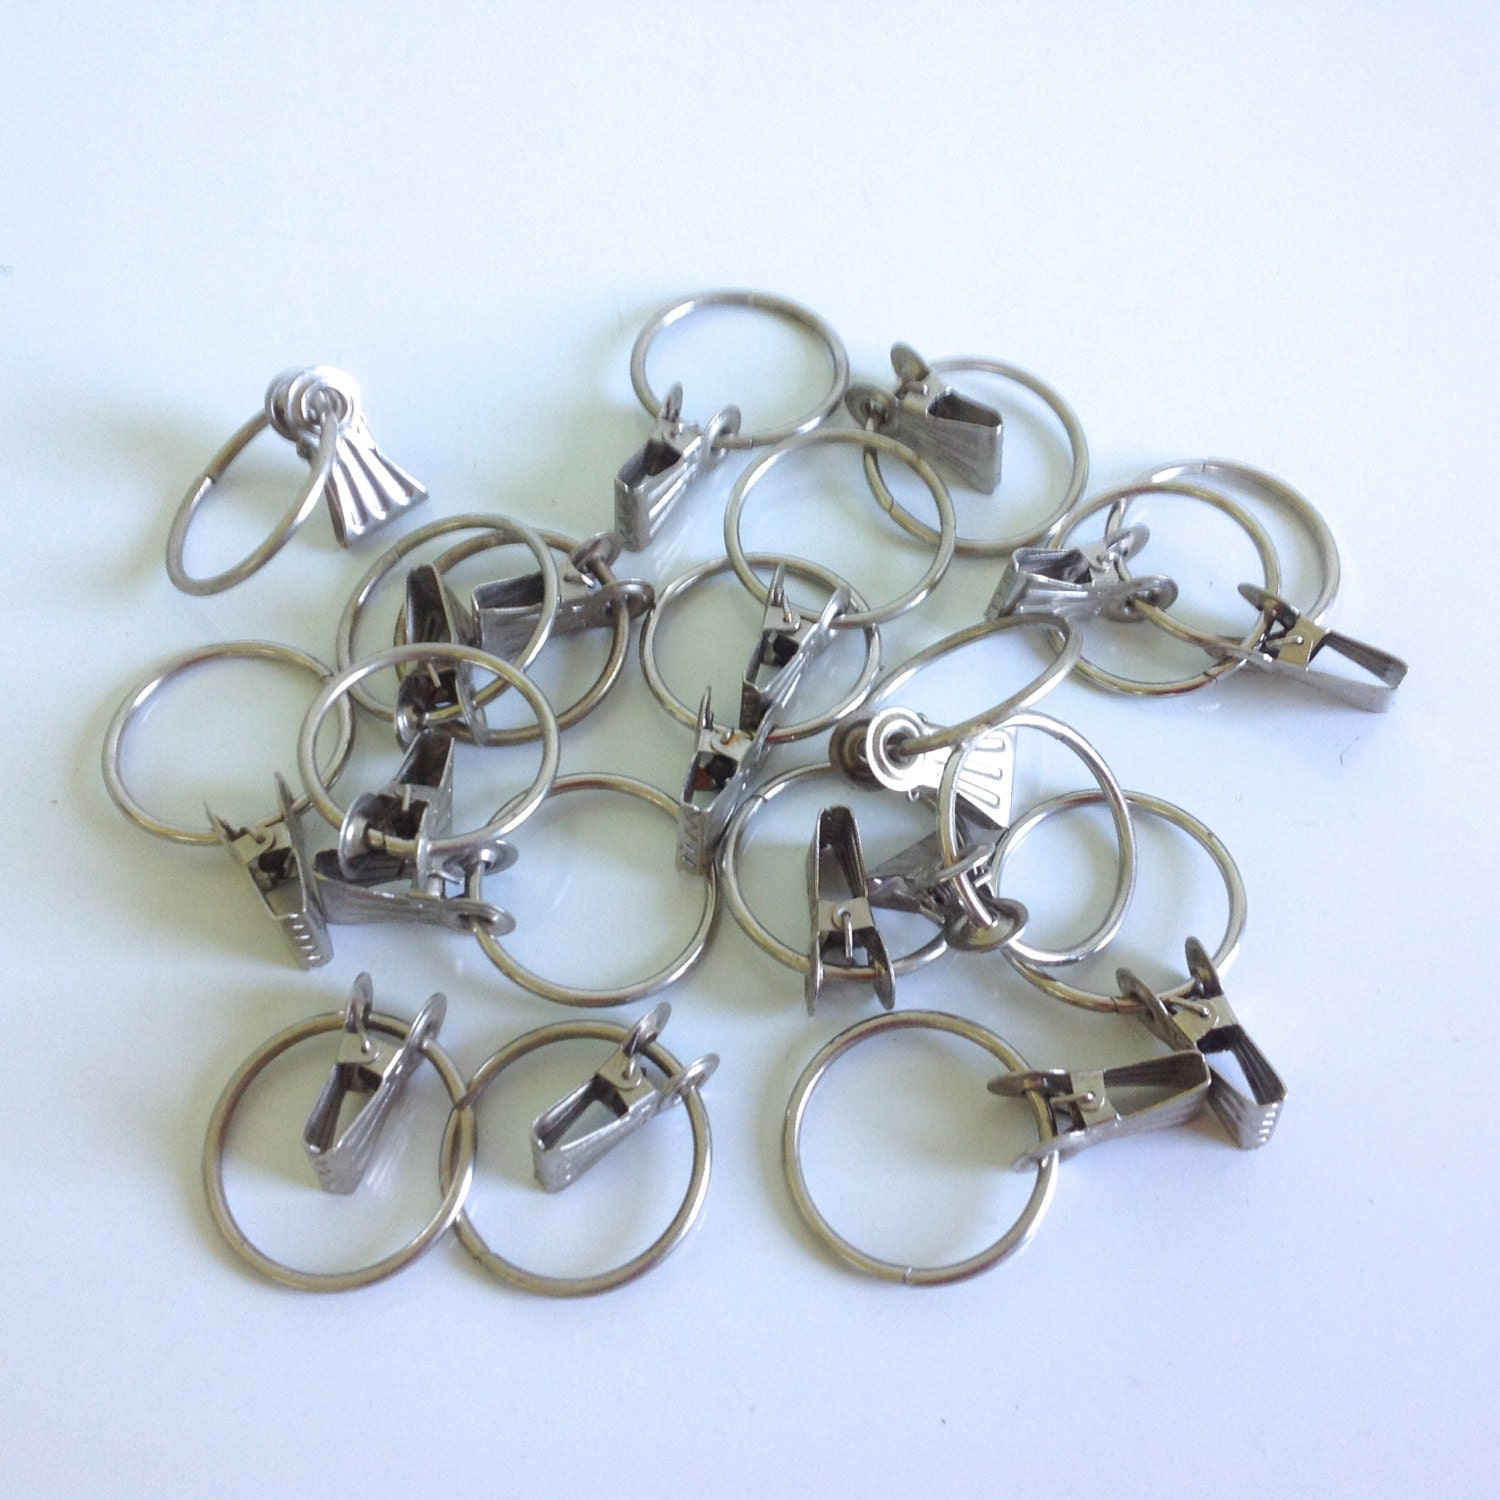 Vintage Curtain Clips Curtain Rings